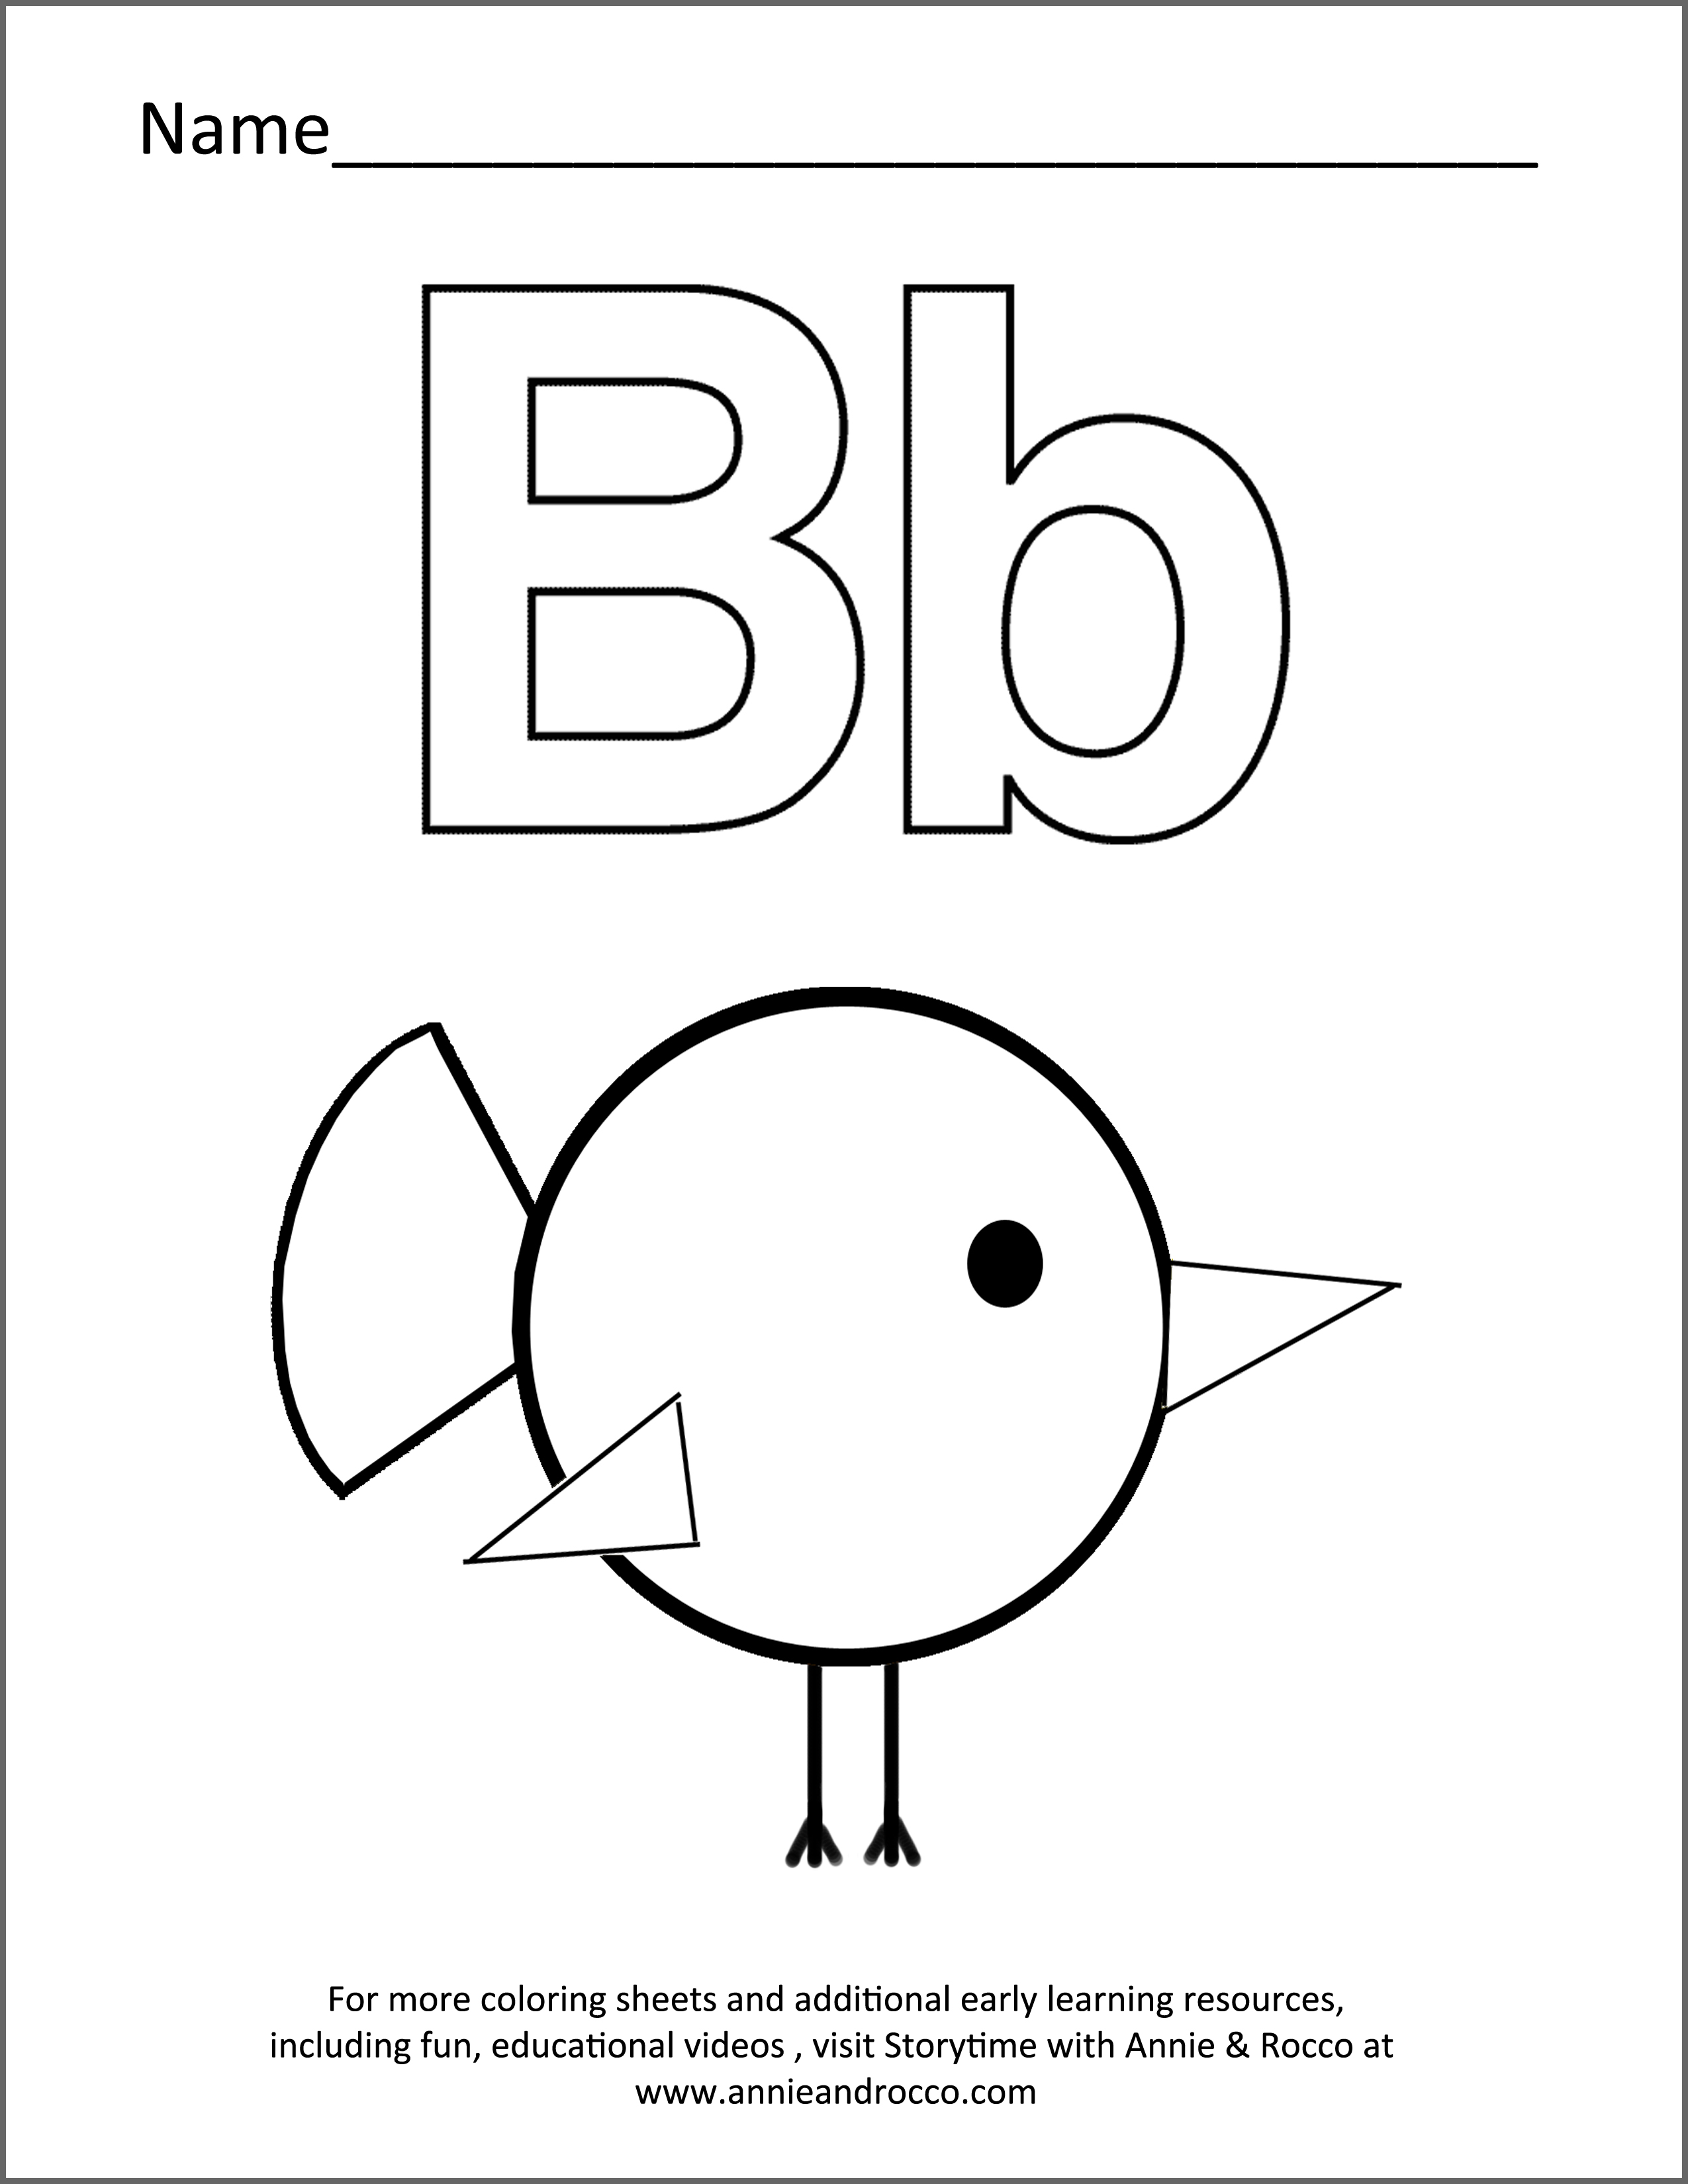 Annie Armstrong Coloring Sheet Coloring Pages